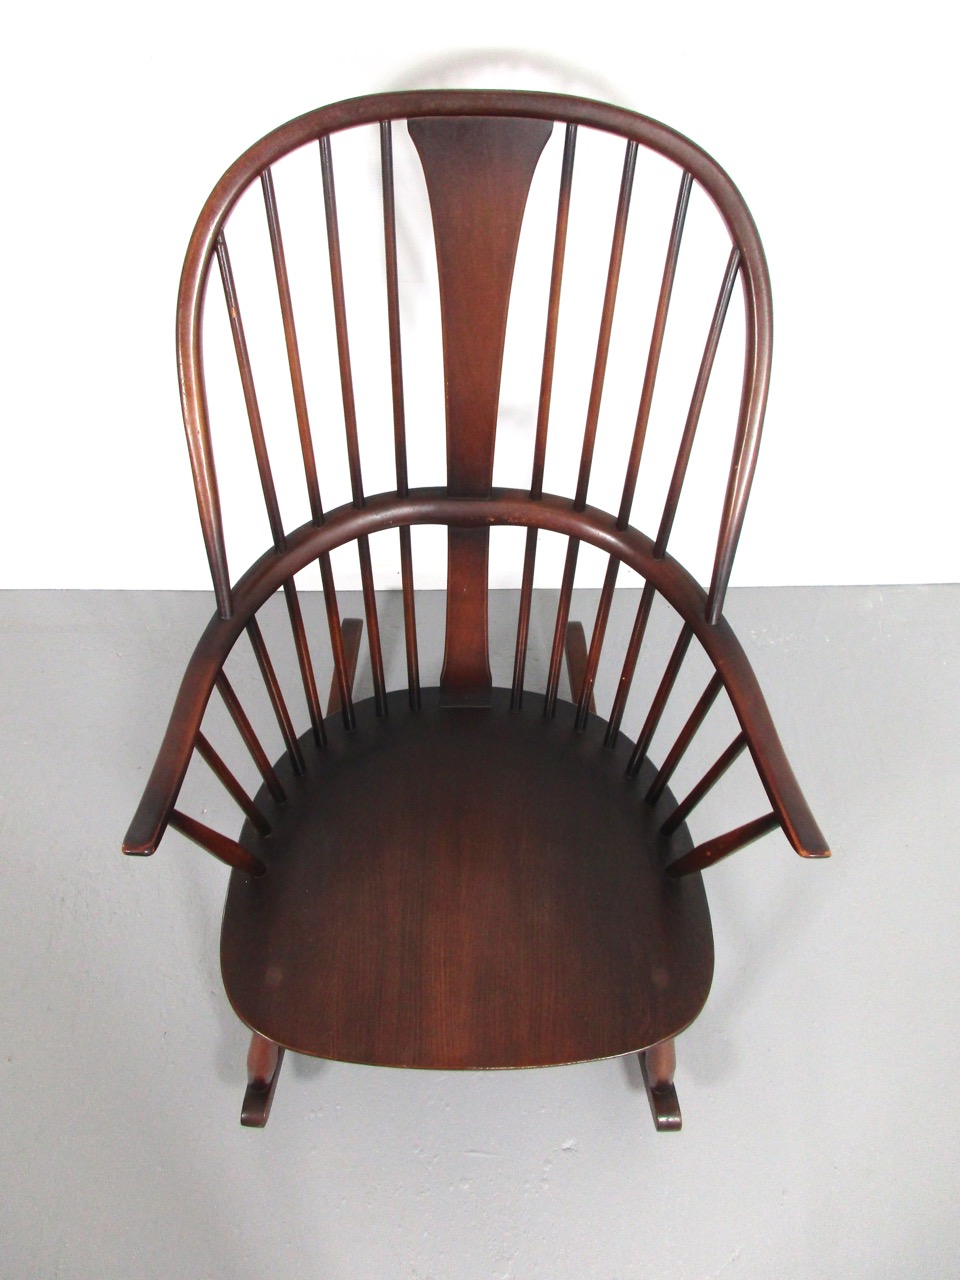 Schaukelstuhl rocking chair ercol england 3 retro salon for Rocking chair schaukelstuhl